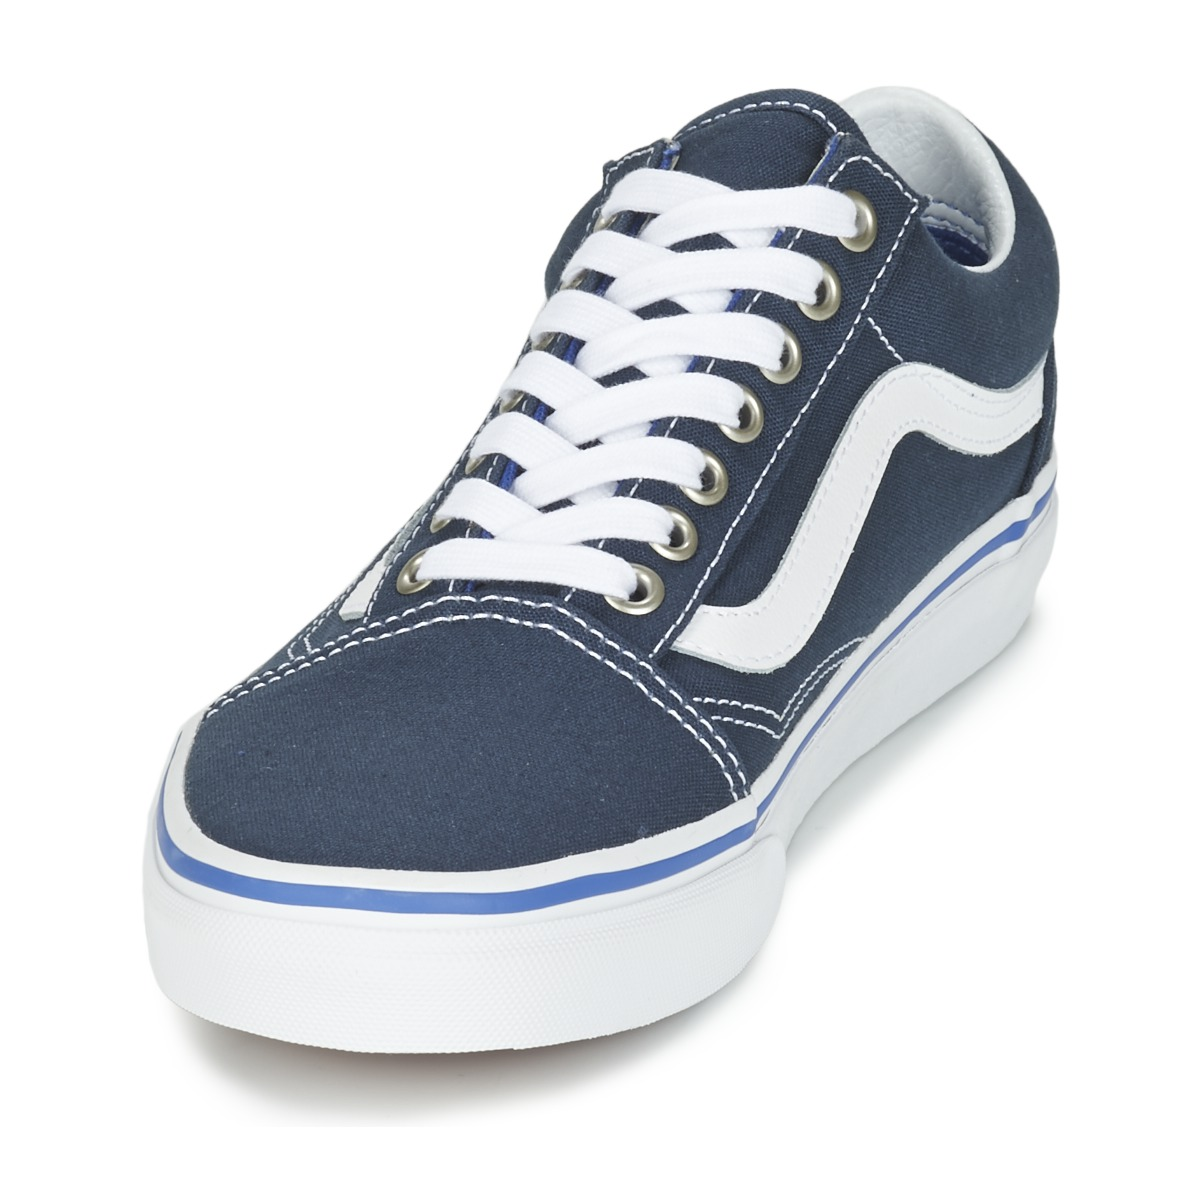 14c091c0e795 outlet Vans OLD SKOOL MIDNIGHT NAVY TRUE White Shoes Low top trainers